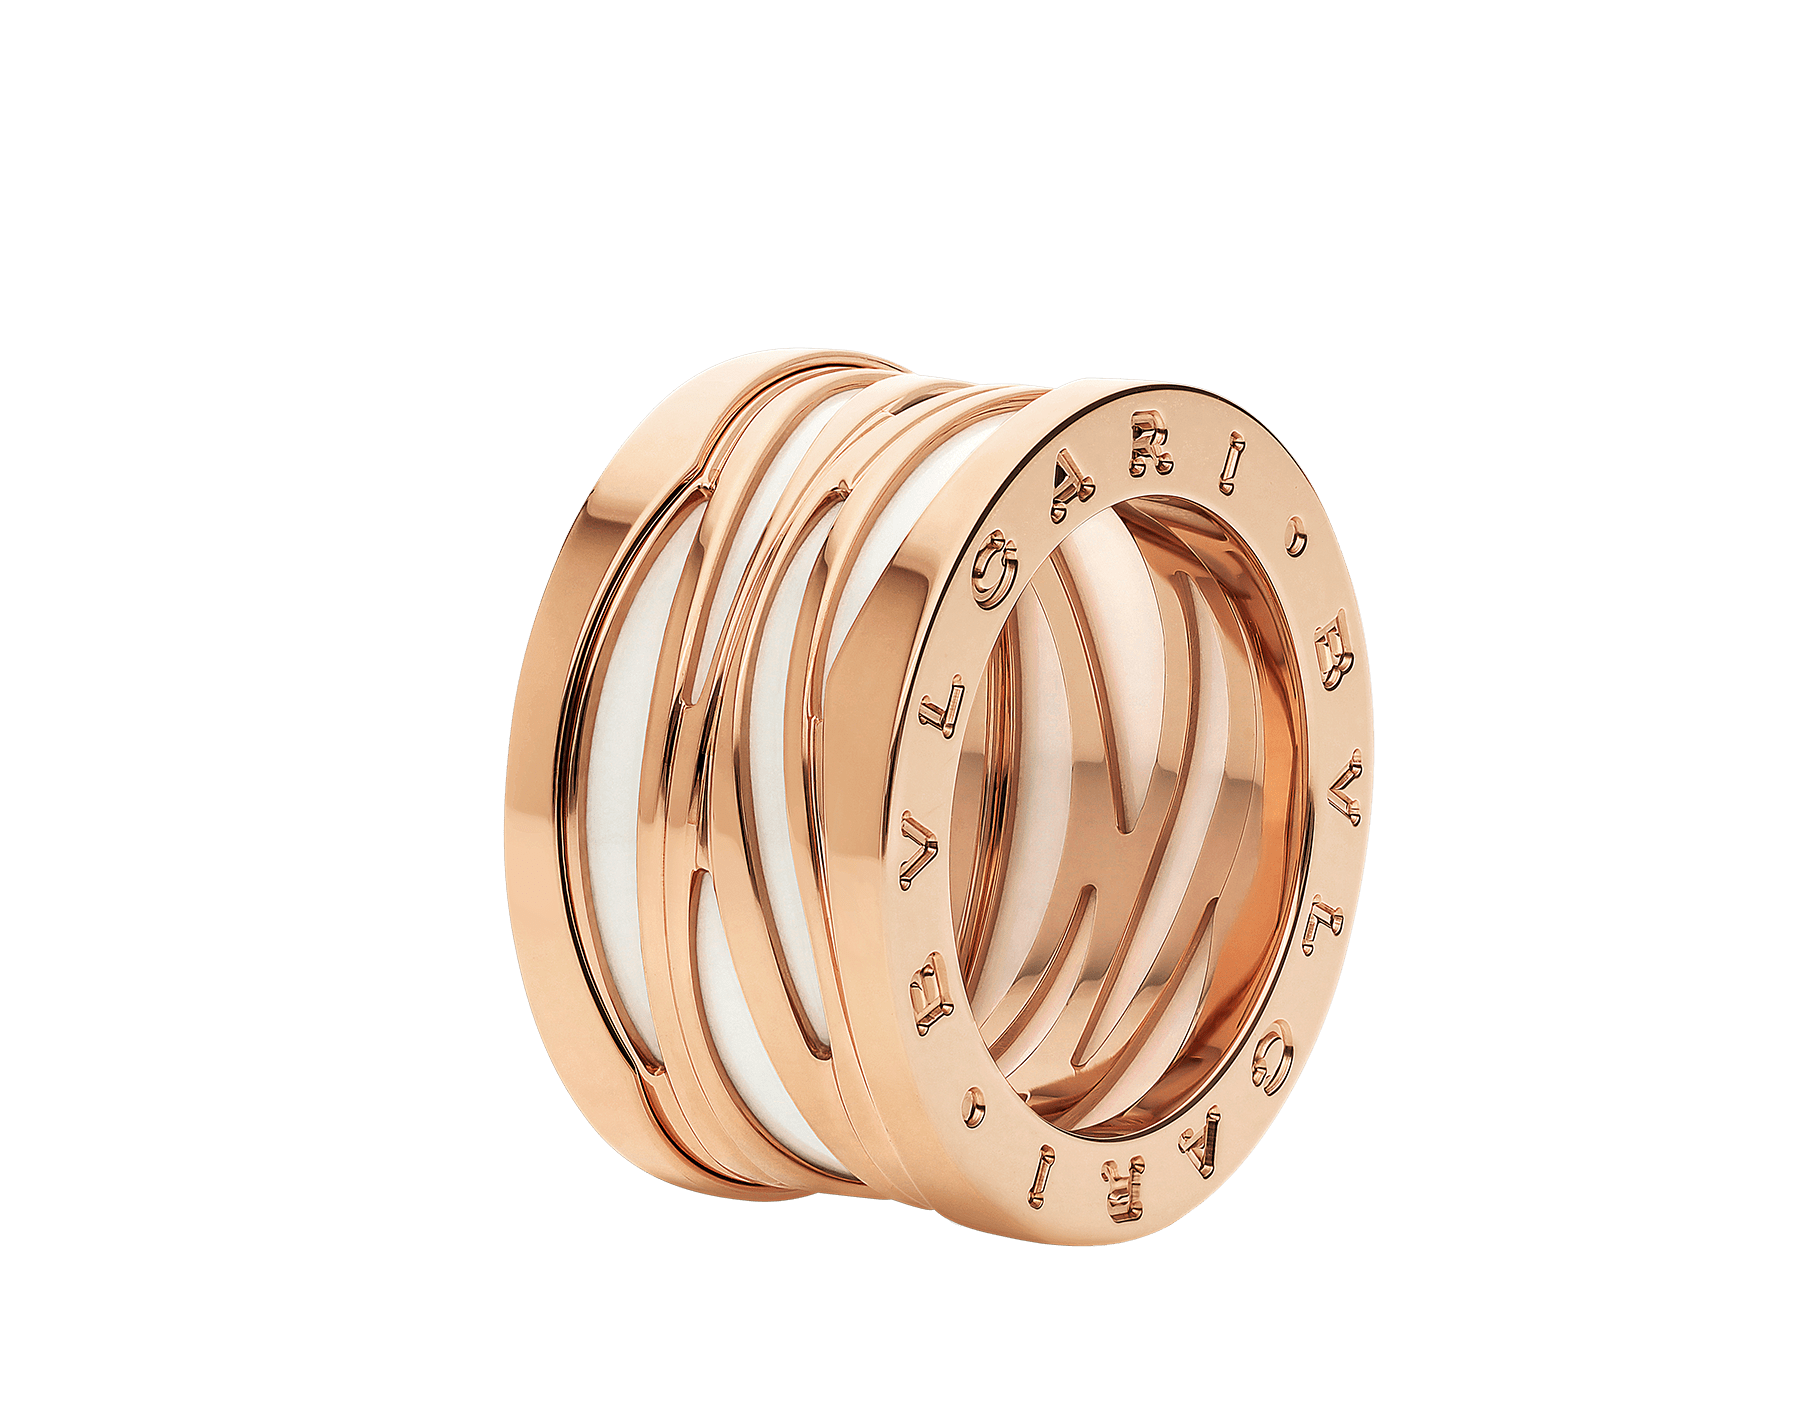 B.zero1 Design Legend four-band ring in 18 kt rose gold and white ceramic AN858574 image 1